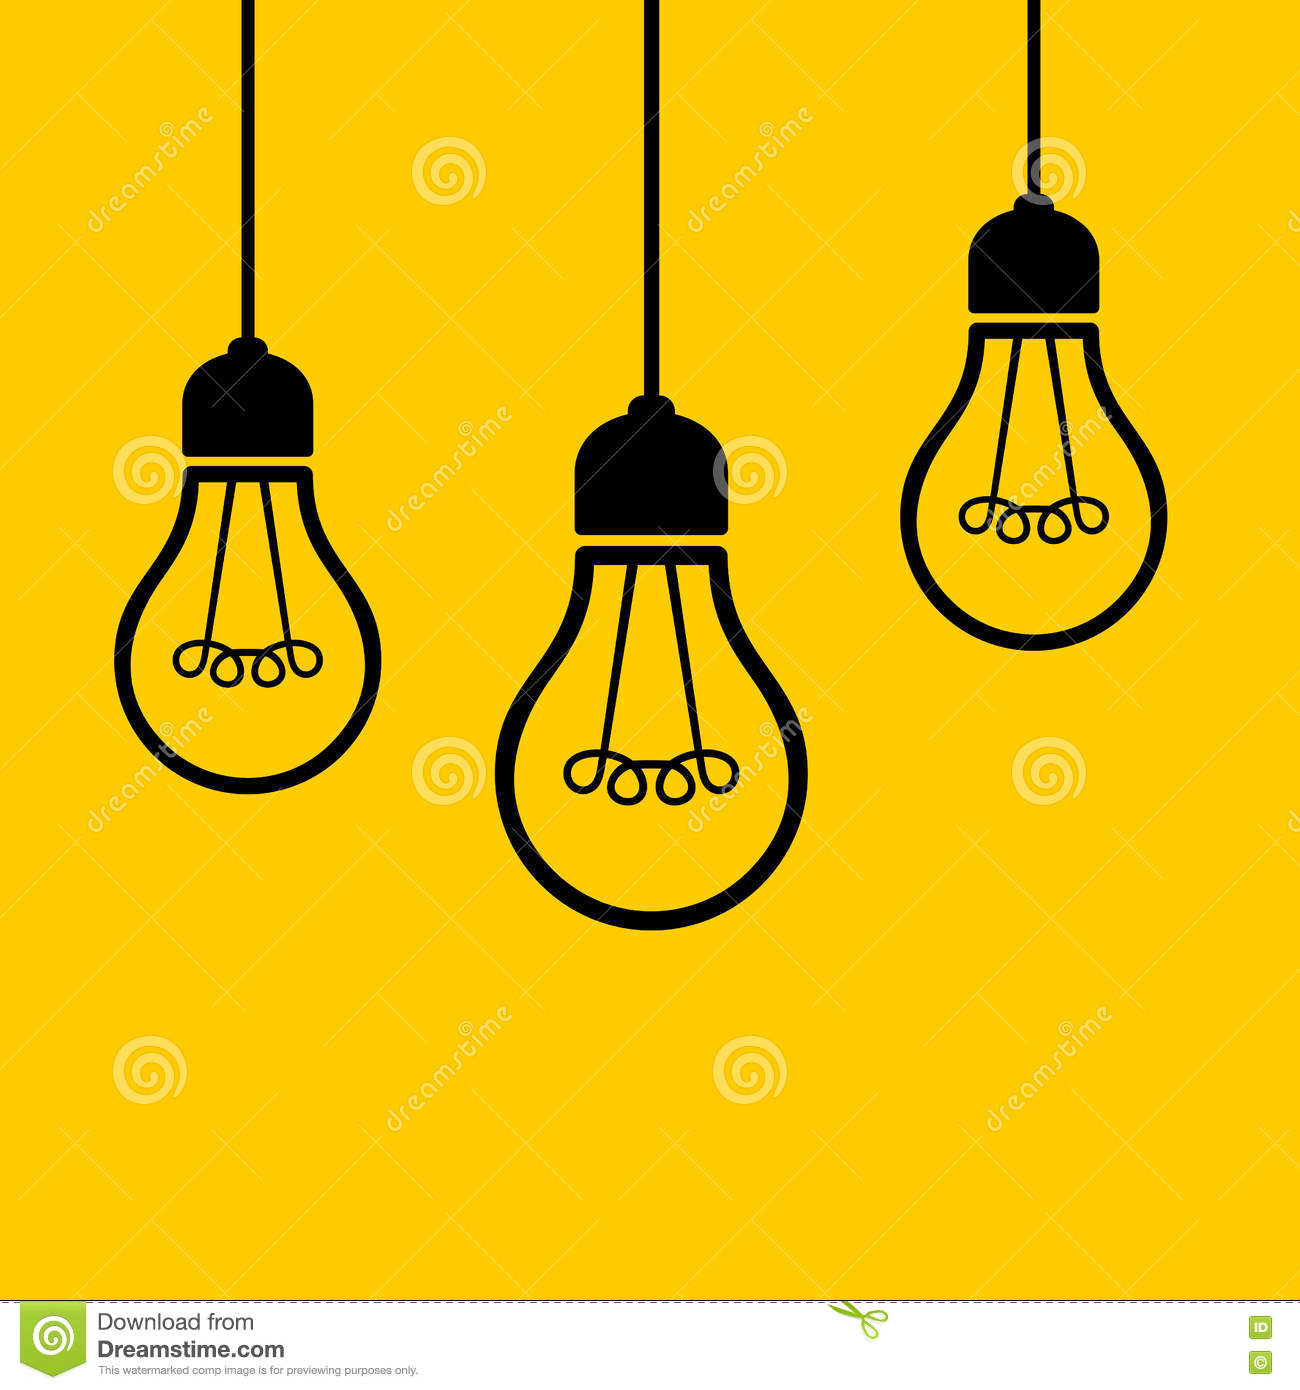 ceiling design ideas tips - Light Bulbs Hanging From The Ceiling Vector Stock Vector